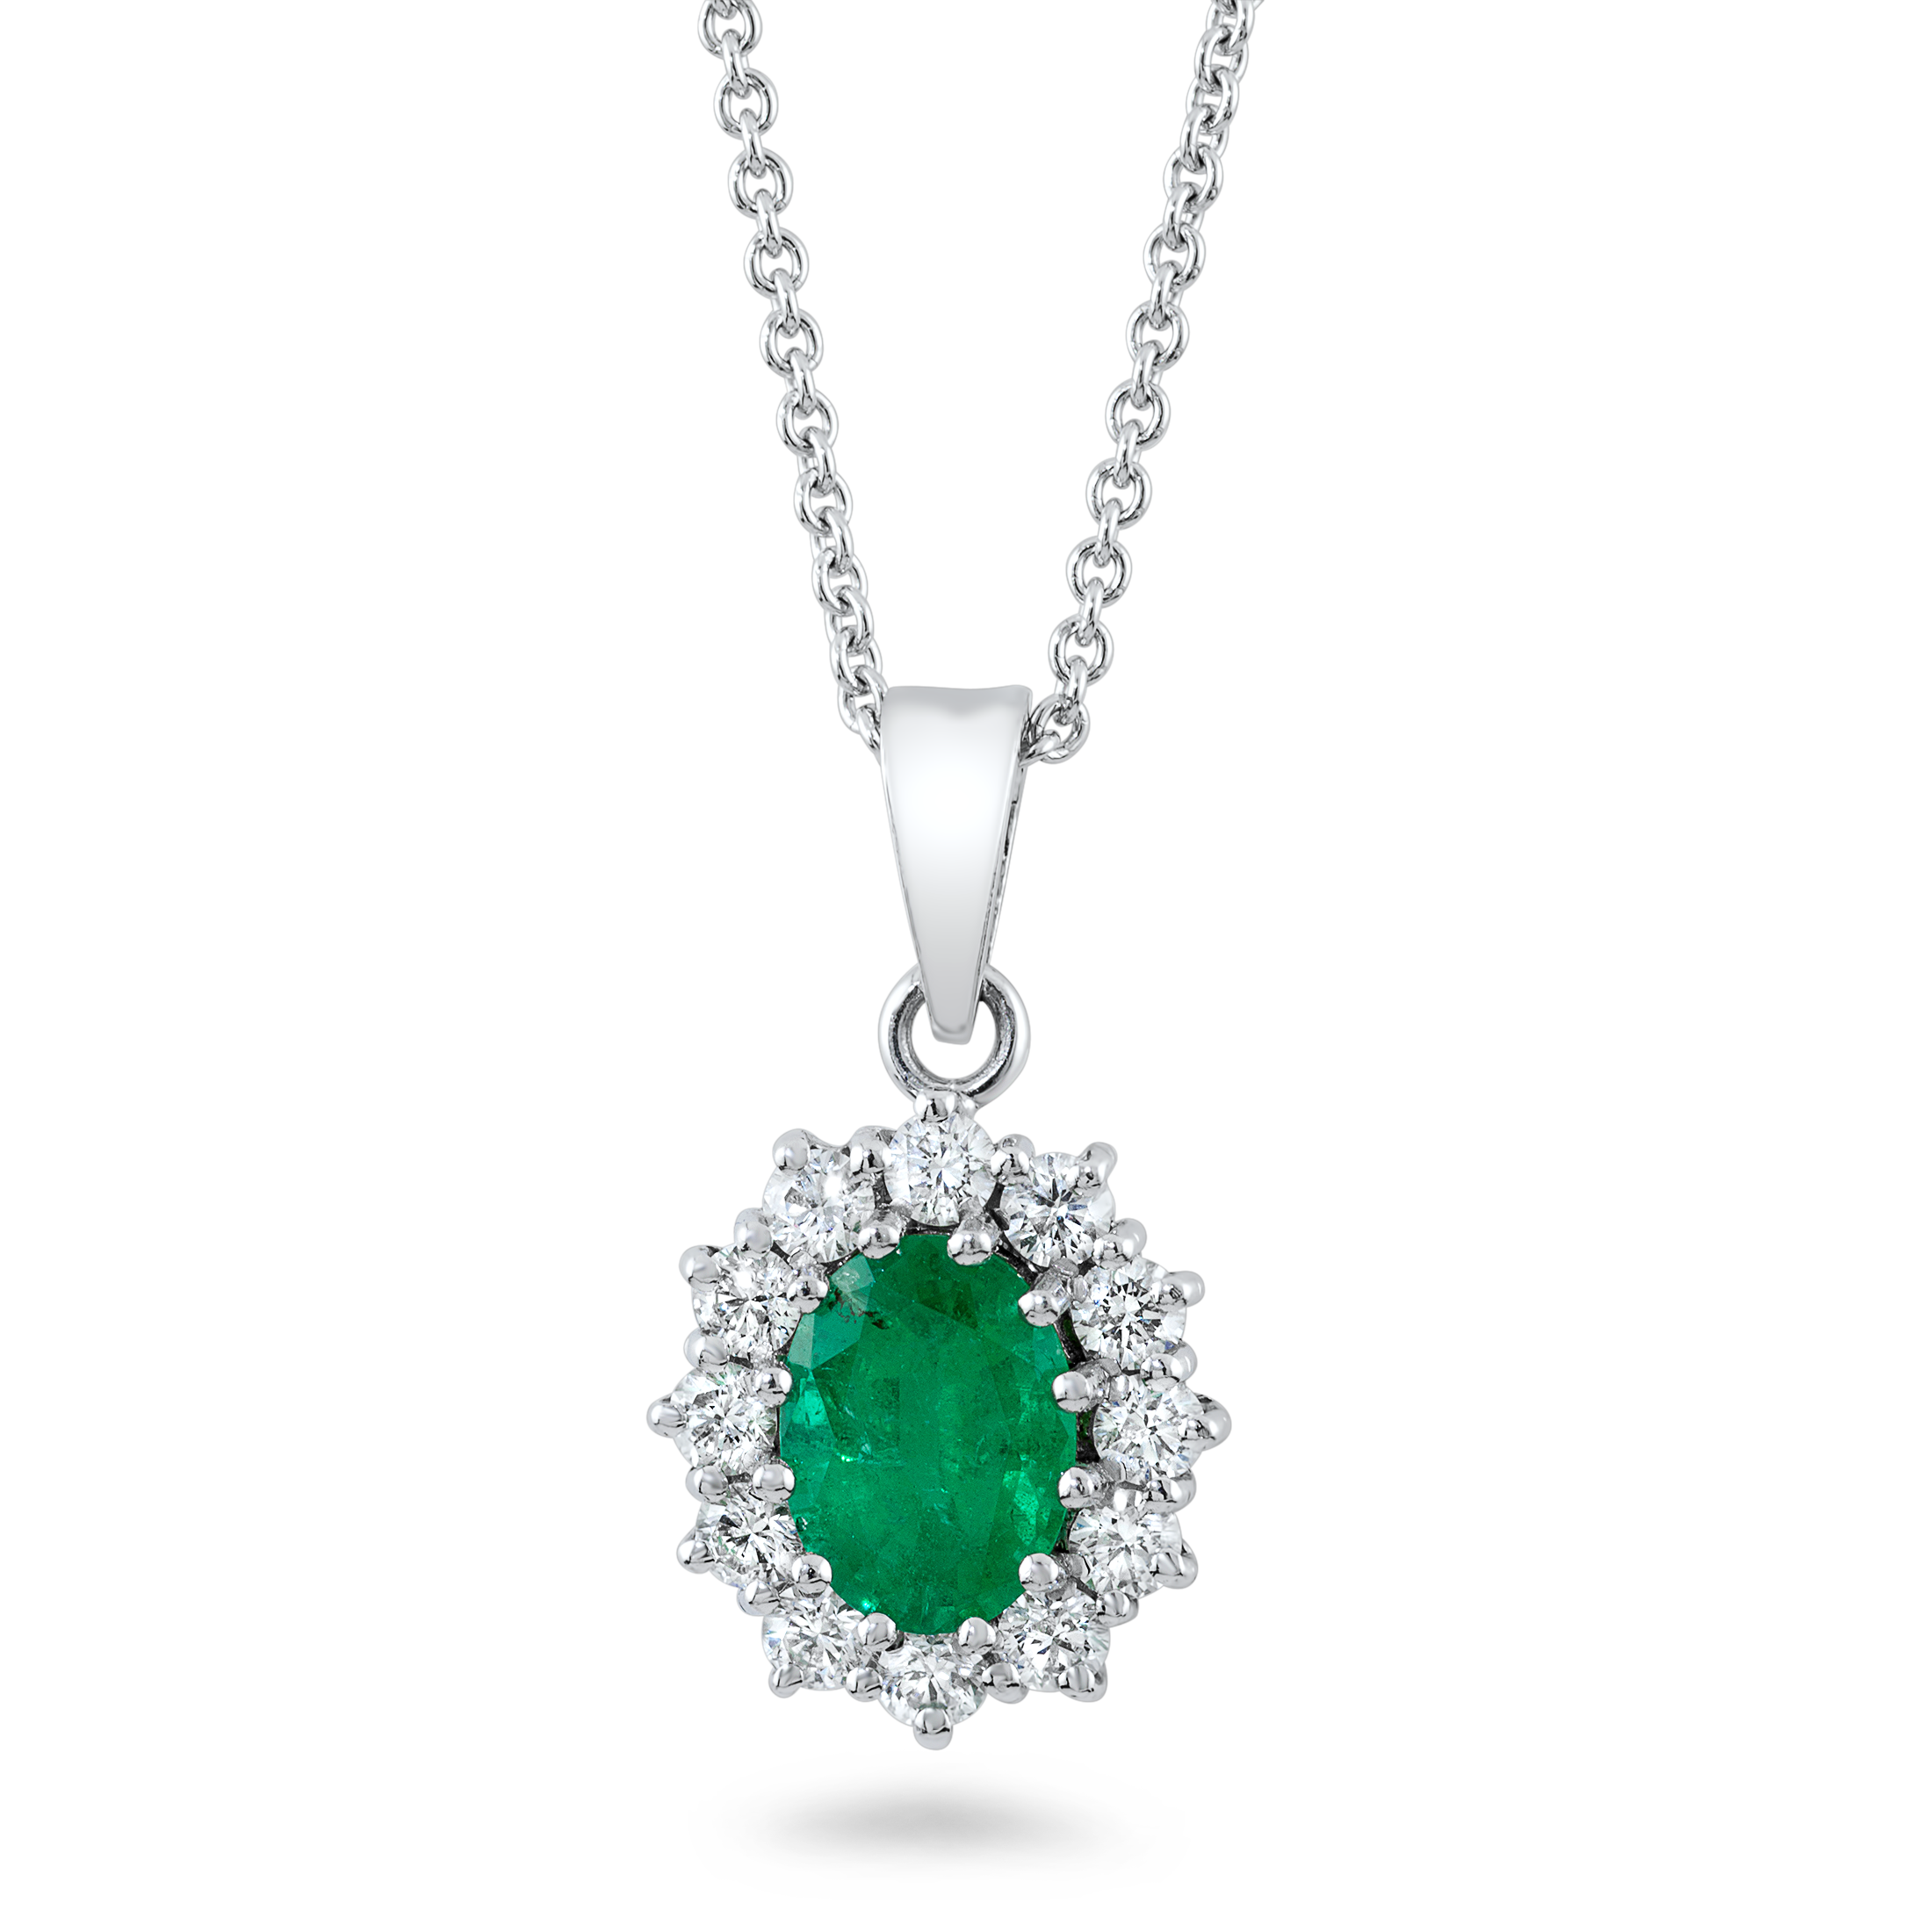 Jewelry, ring, necklace PNG images free download